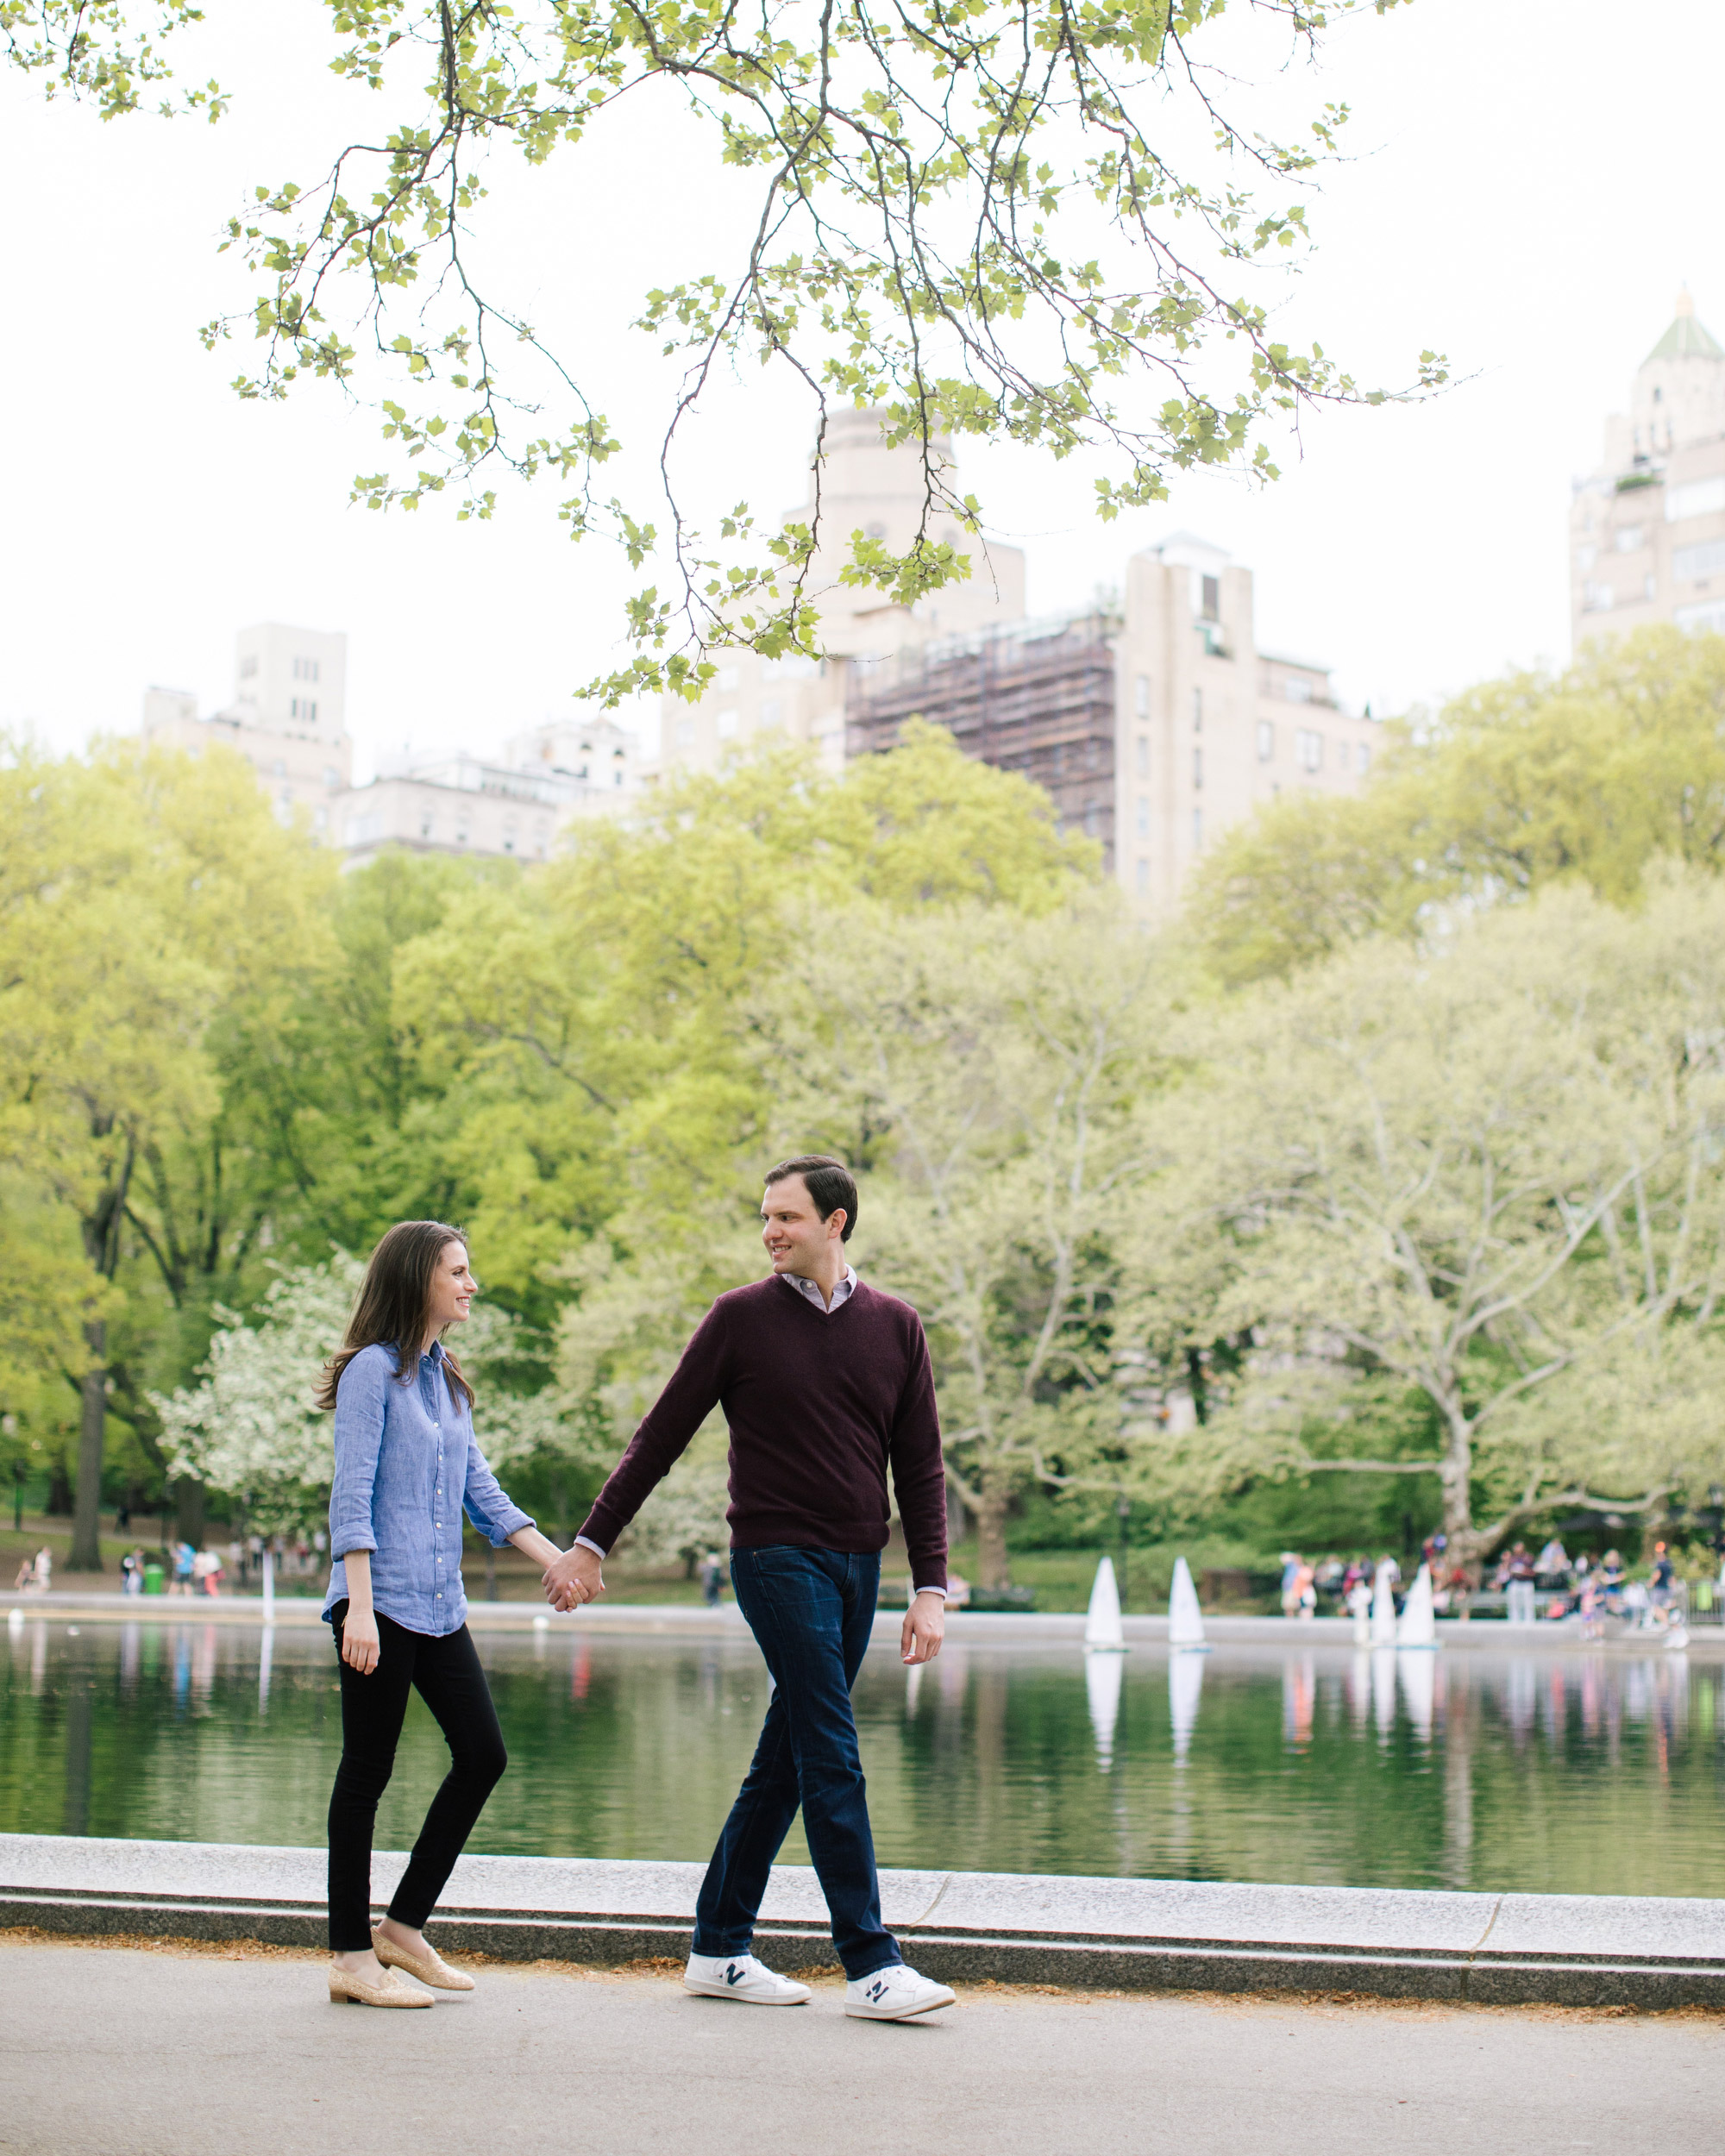 04_central_park_engagement_session_photos.jpg